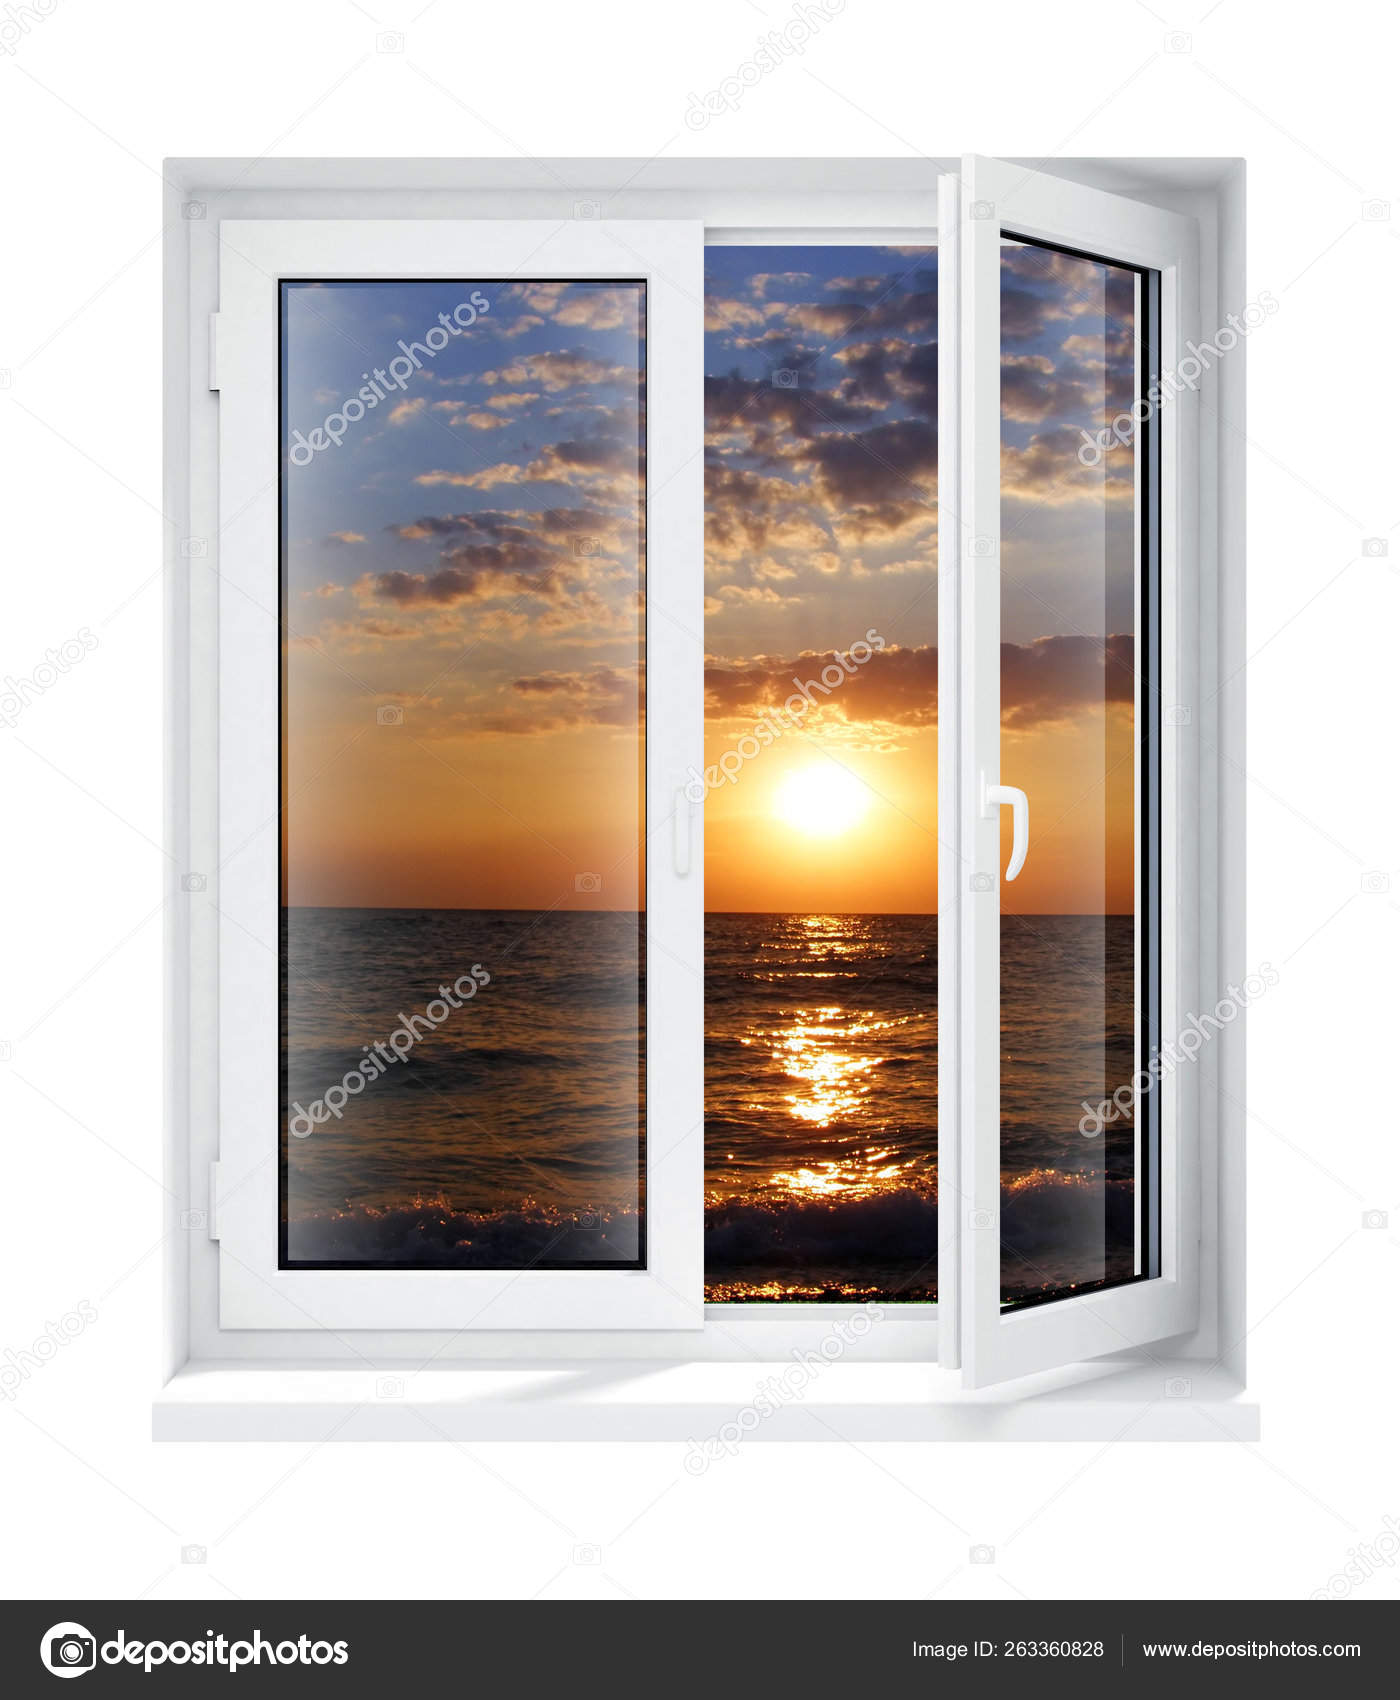 New Opened Plastic Glass Window Frame Evening Isolated White